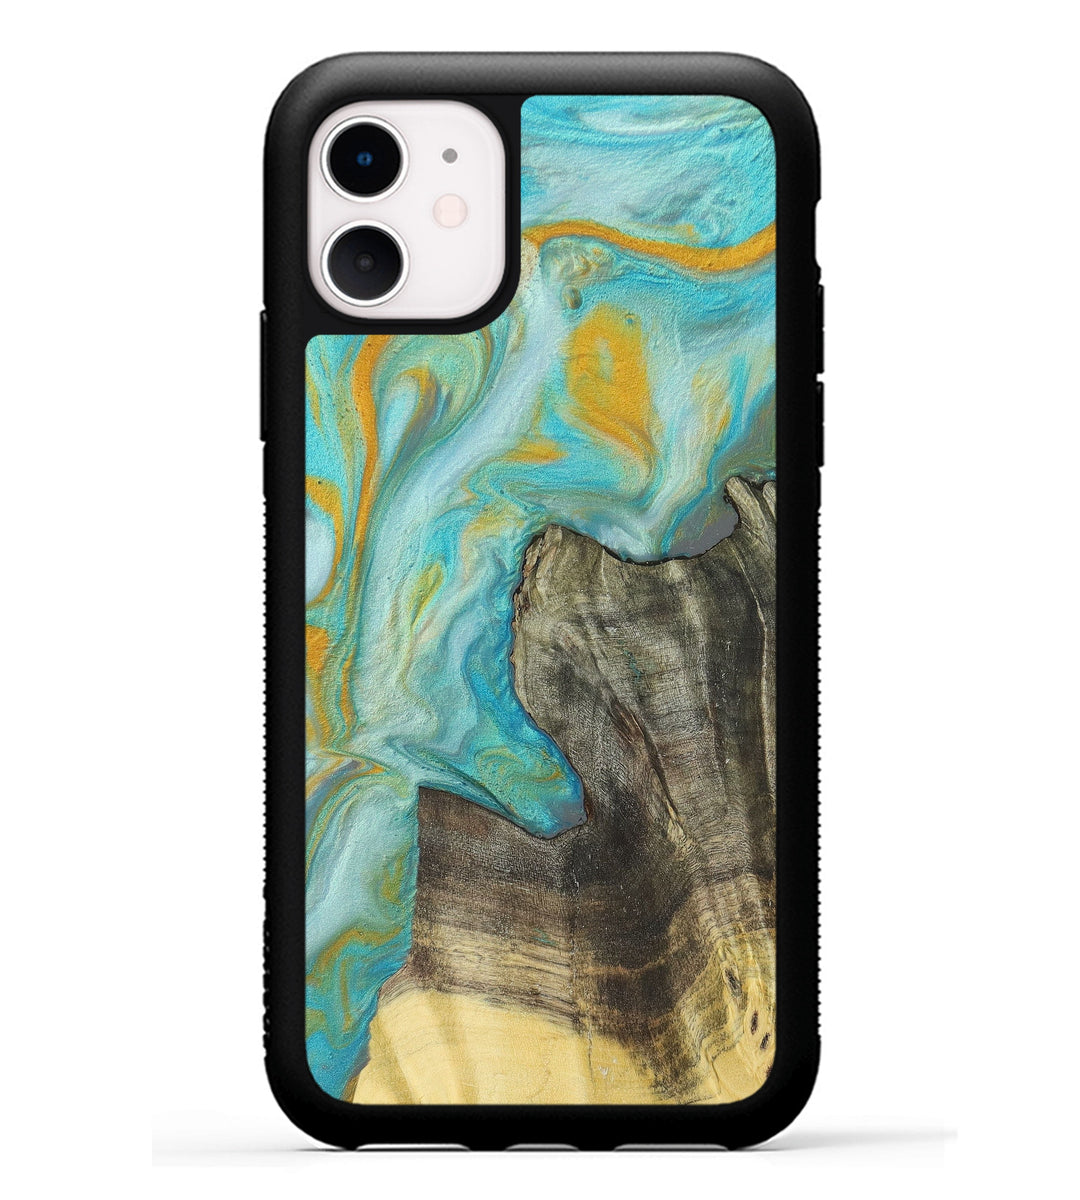 iPhone 11 Wood+Resin Phone Case - Tresrch (Teal & Gold, 349174)